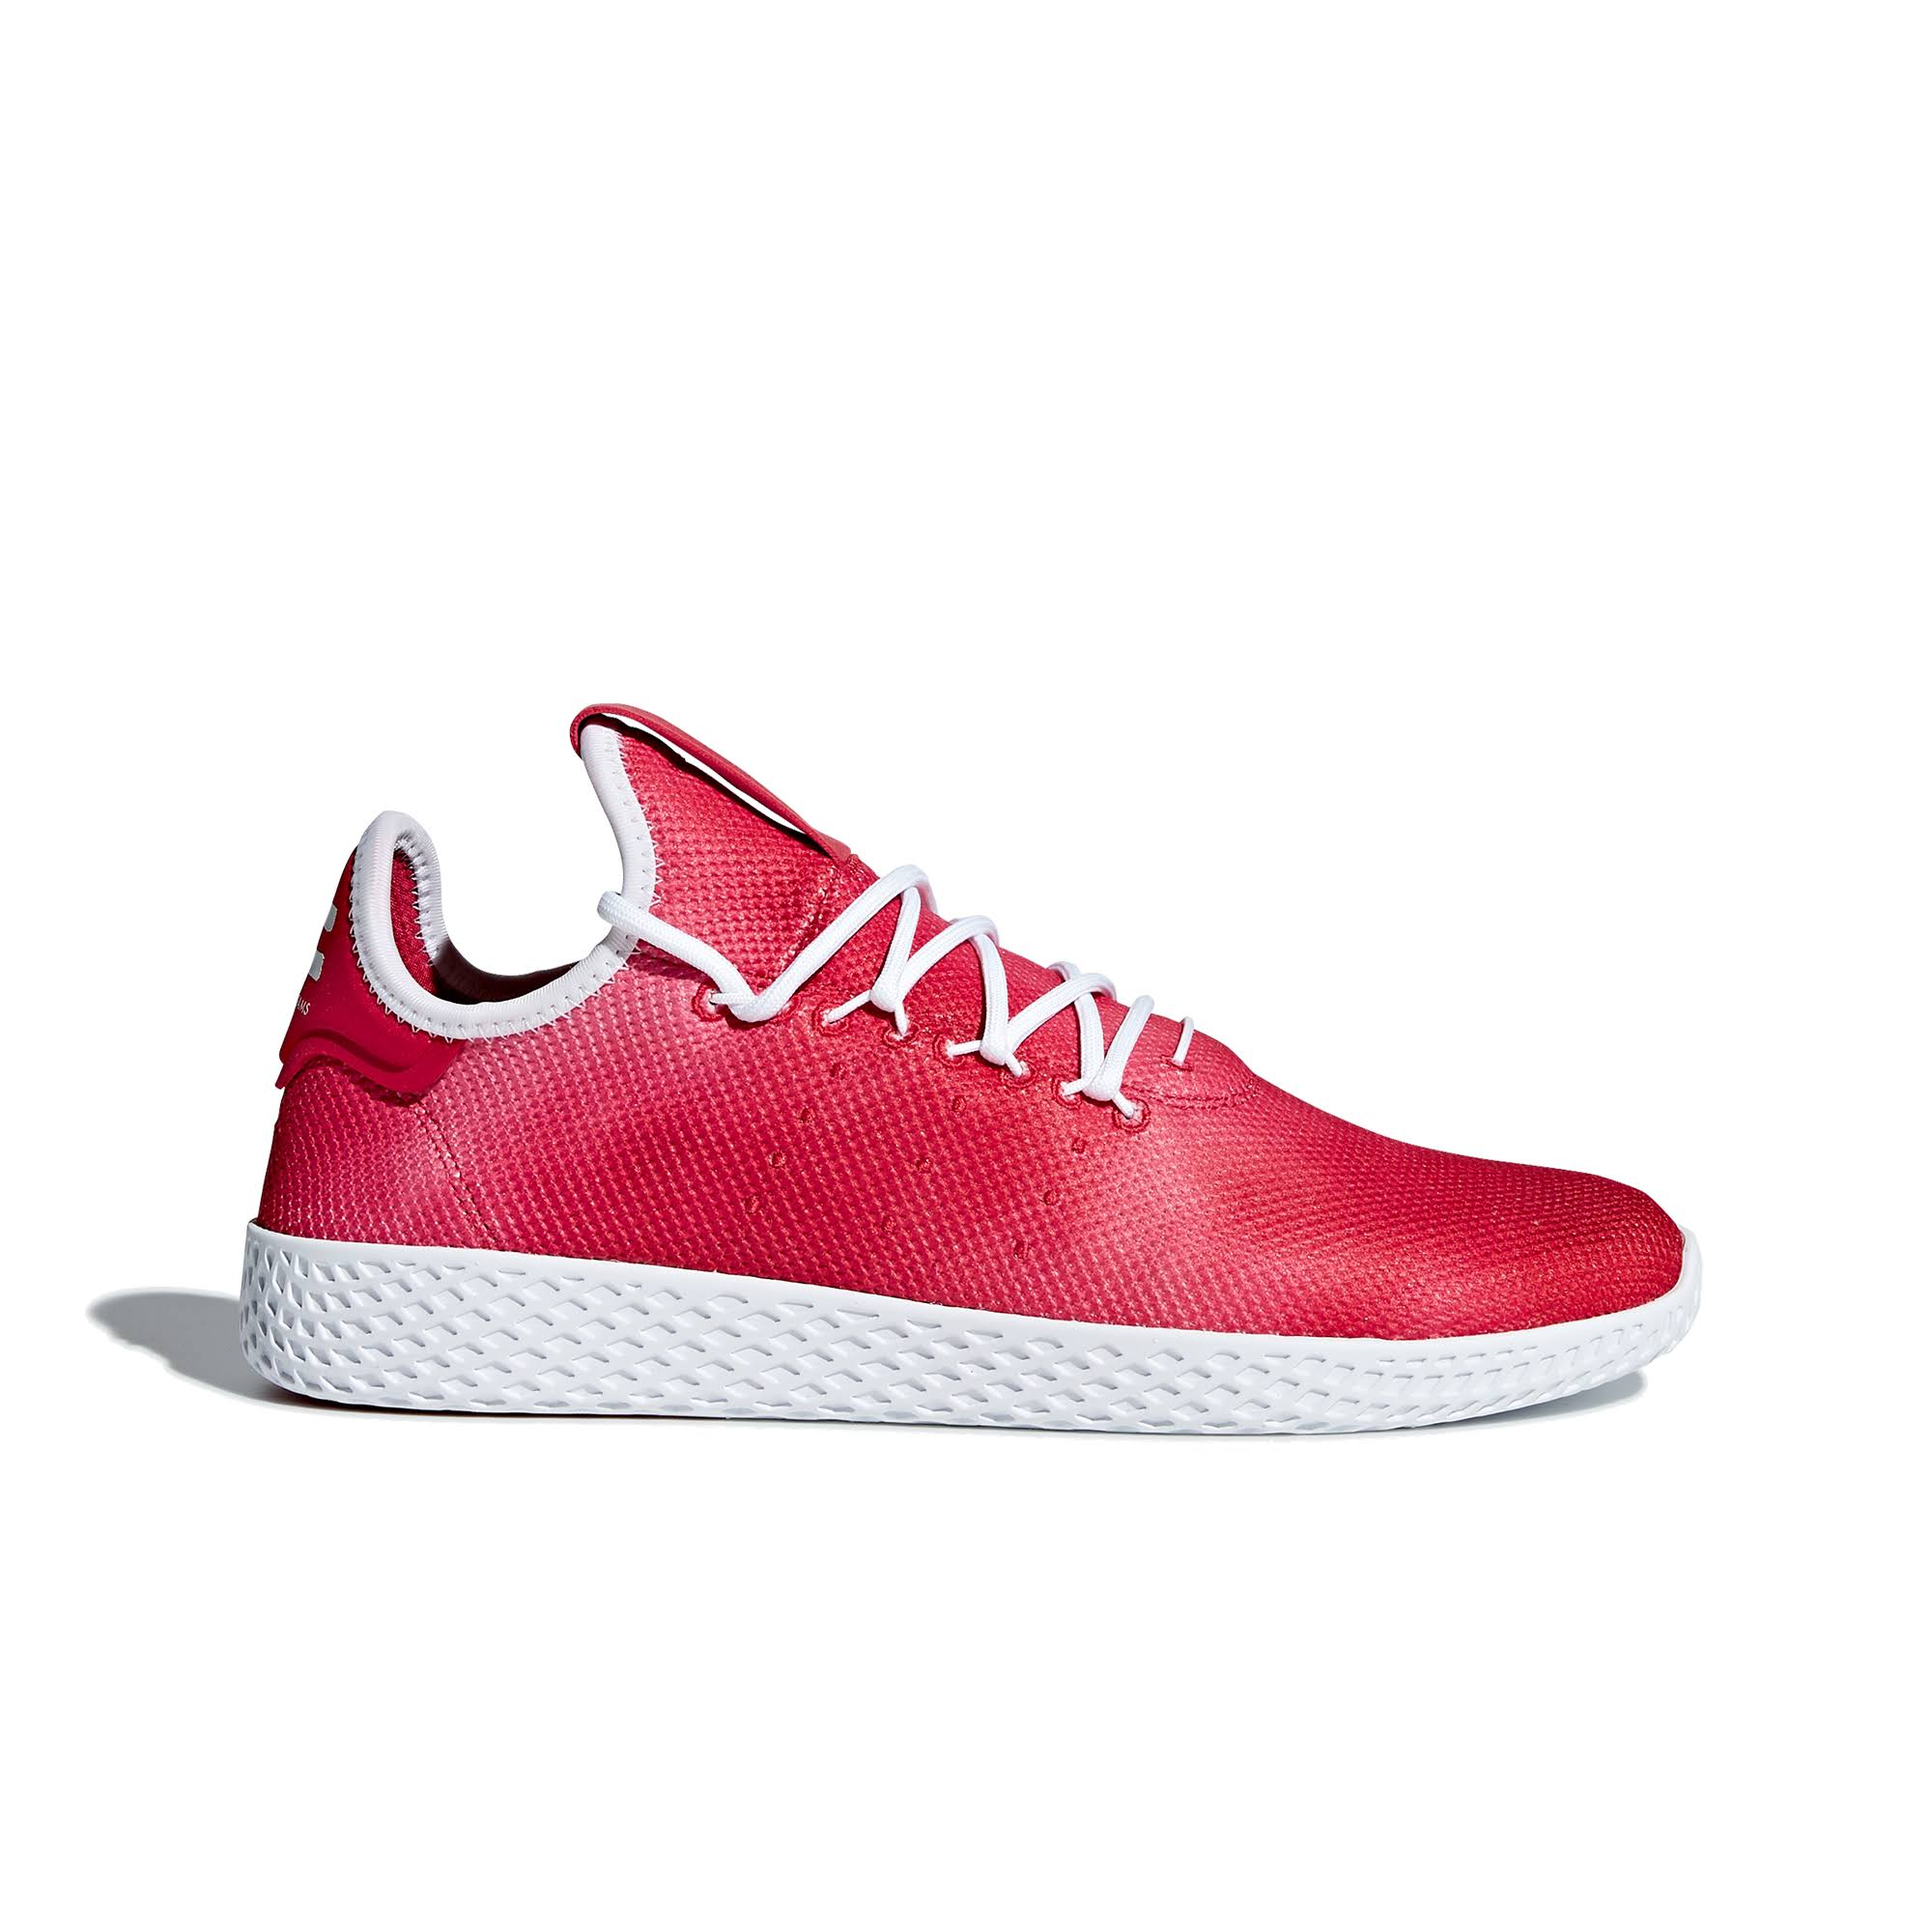 AdidasHeren Huscharlakenrood Pharrell AdidasHeren Williams Pharrell Williams Tennis EHD2bWY9Ie